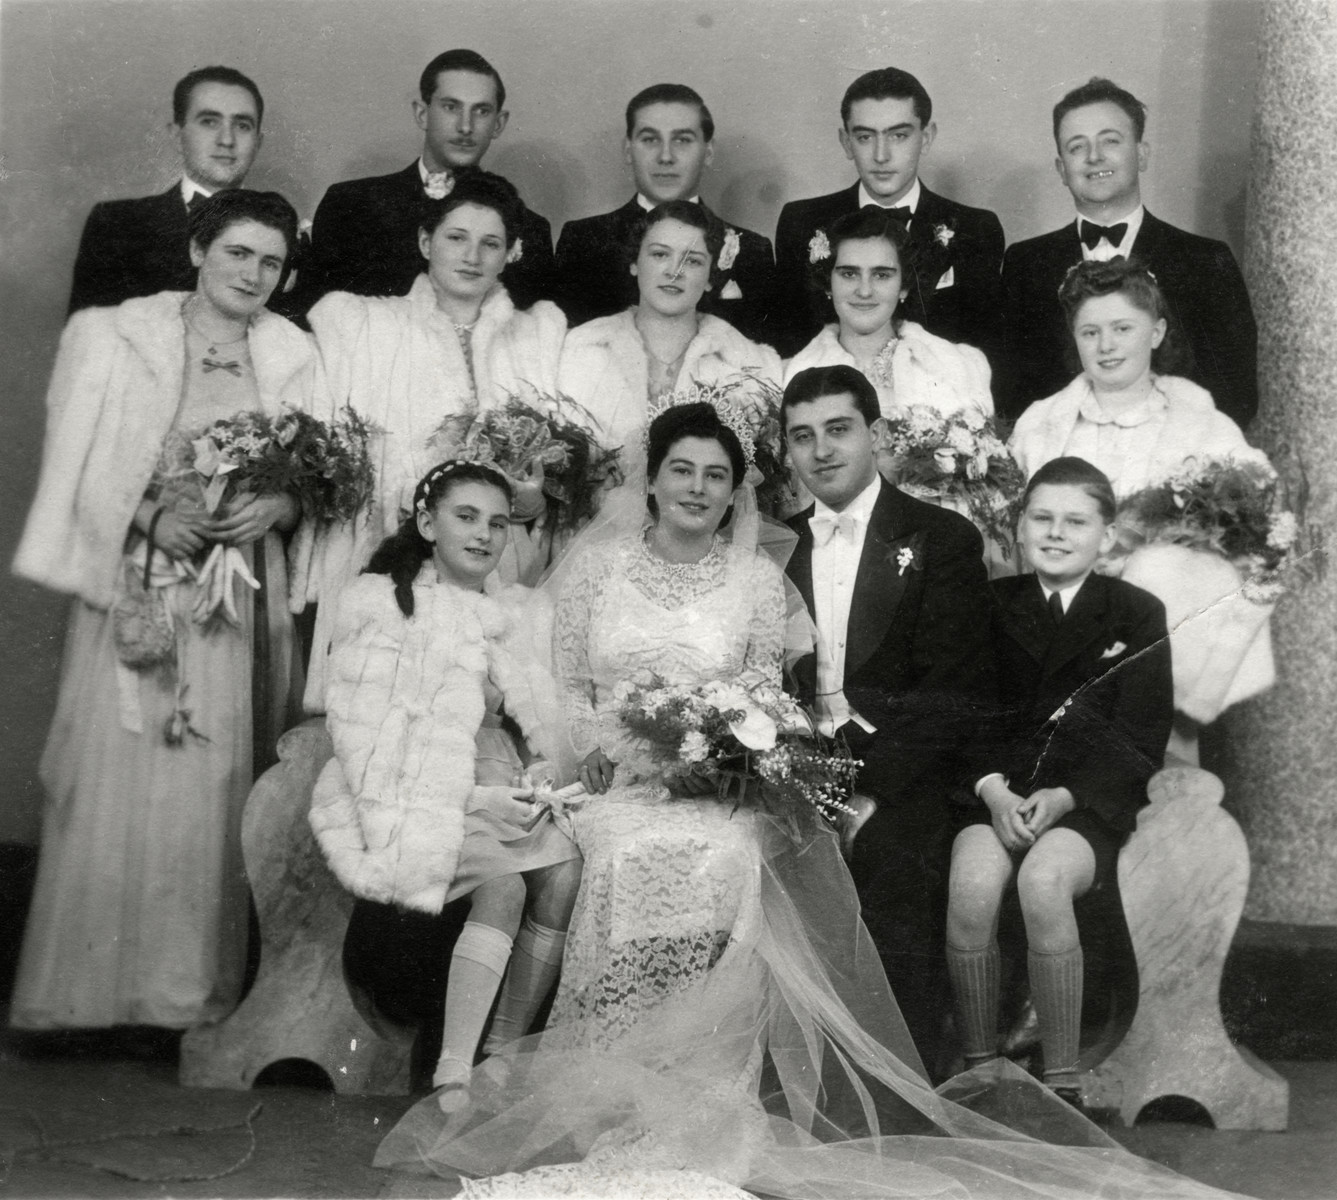 Wedding portrait of Zoltan Shiklos, cousin of the donor.  Zoltan Shiklos perished in the Holocaust. Agnes Somlo is pictured in the fur coat.